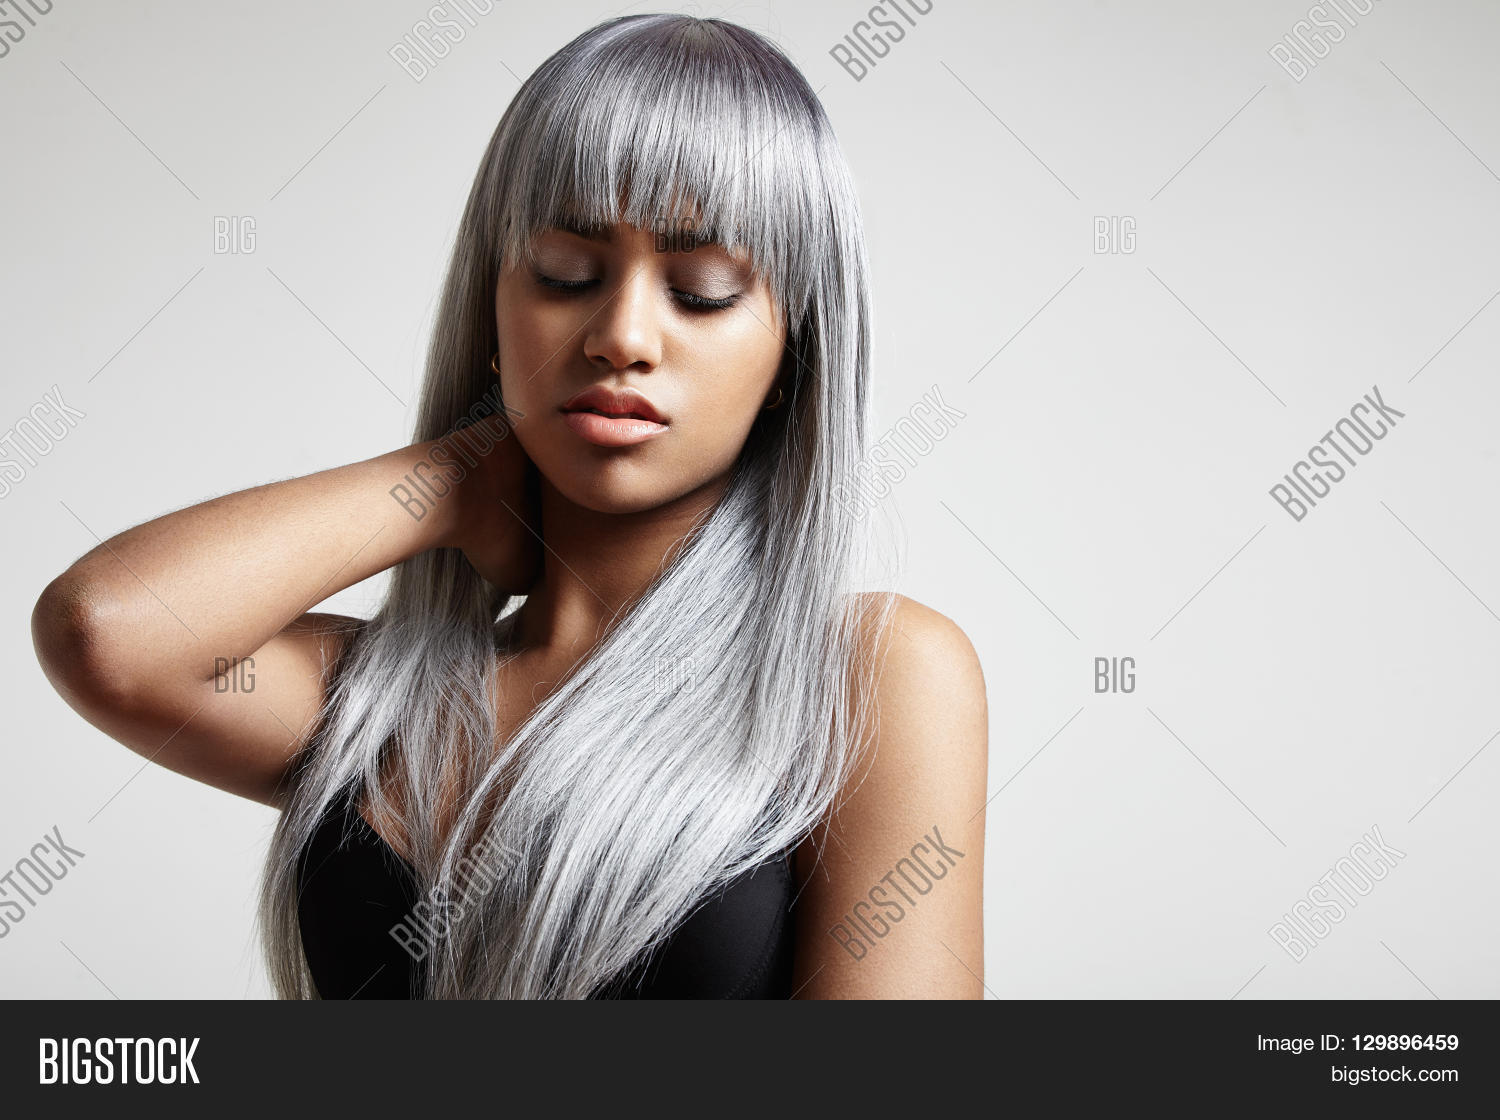 Woman Long Grey Hair Image Photo Free Trial Bigstock